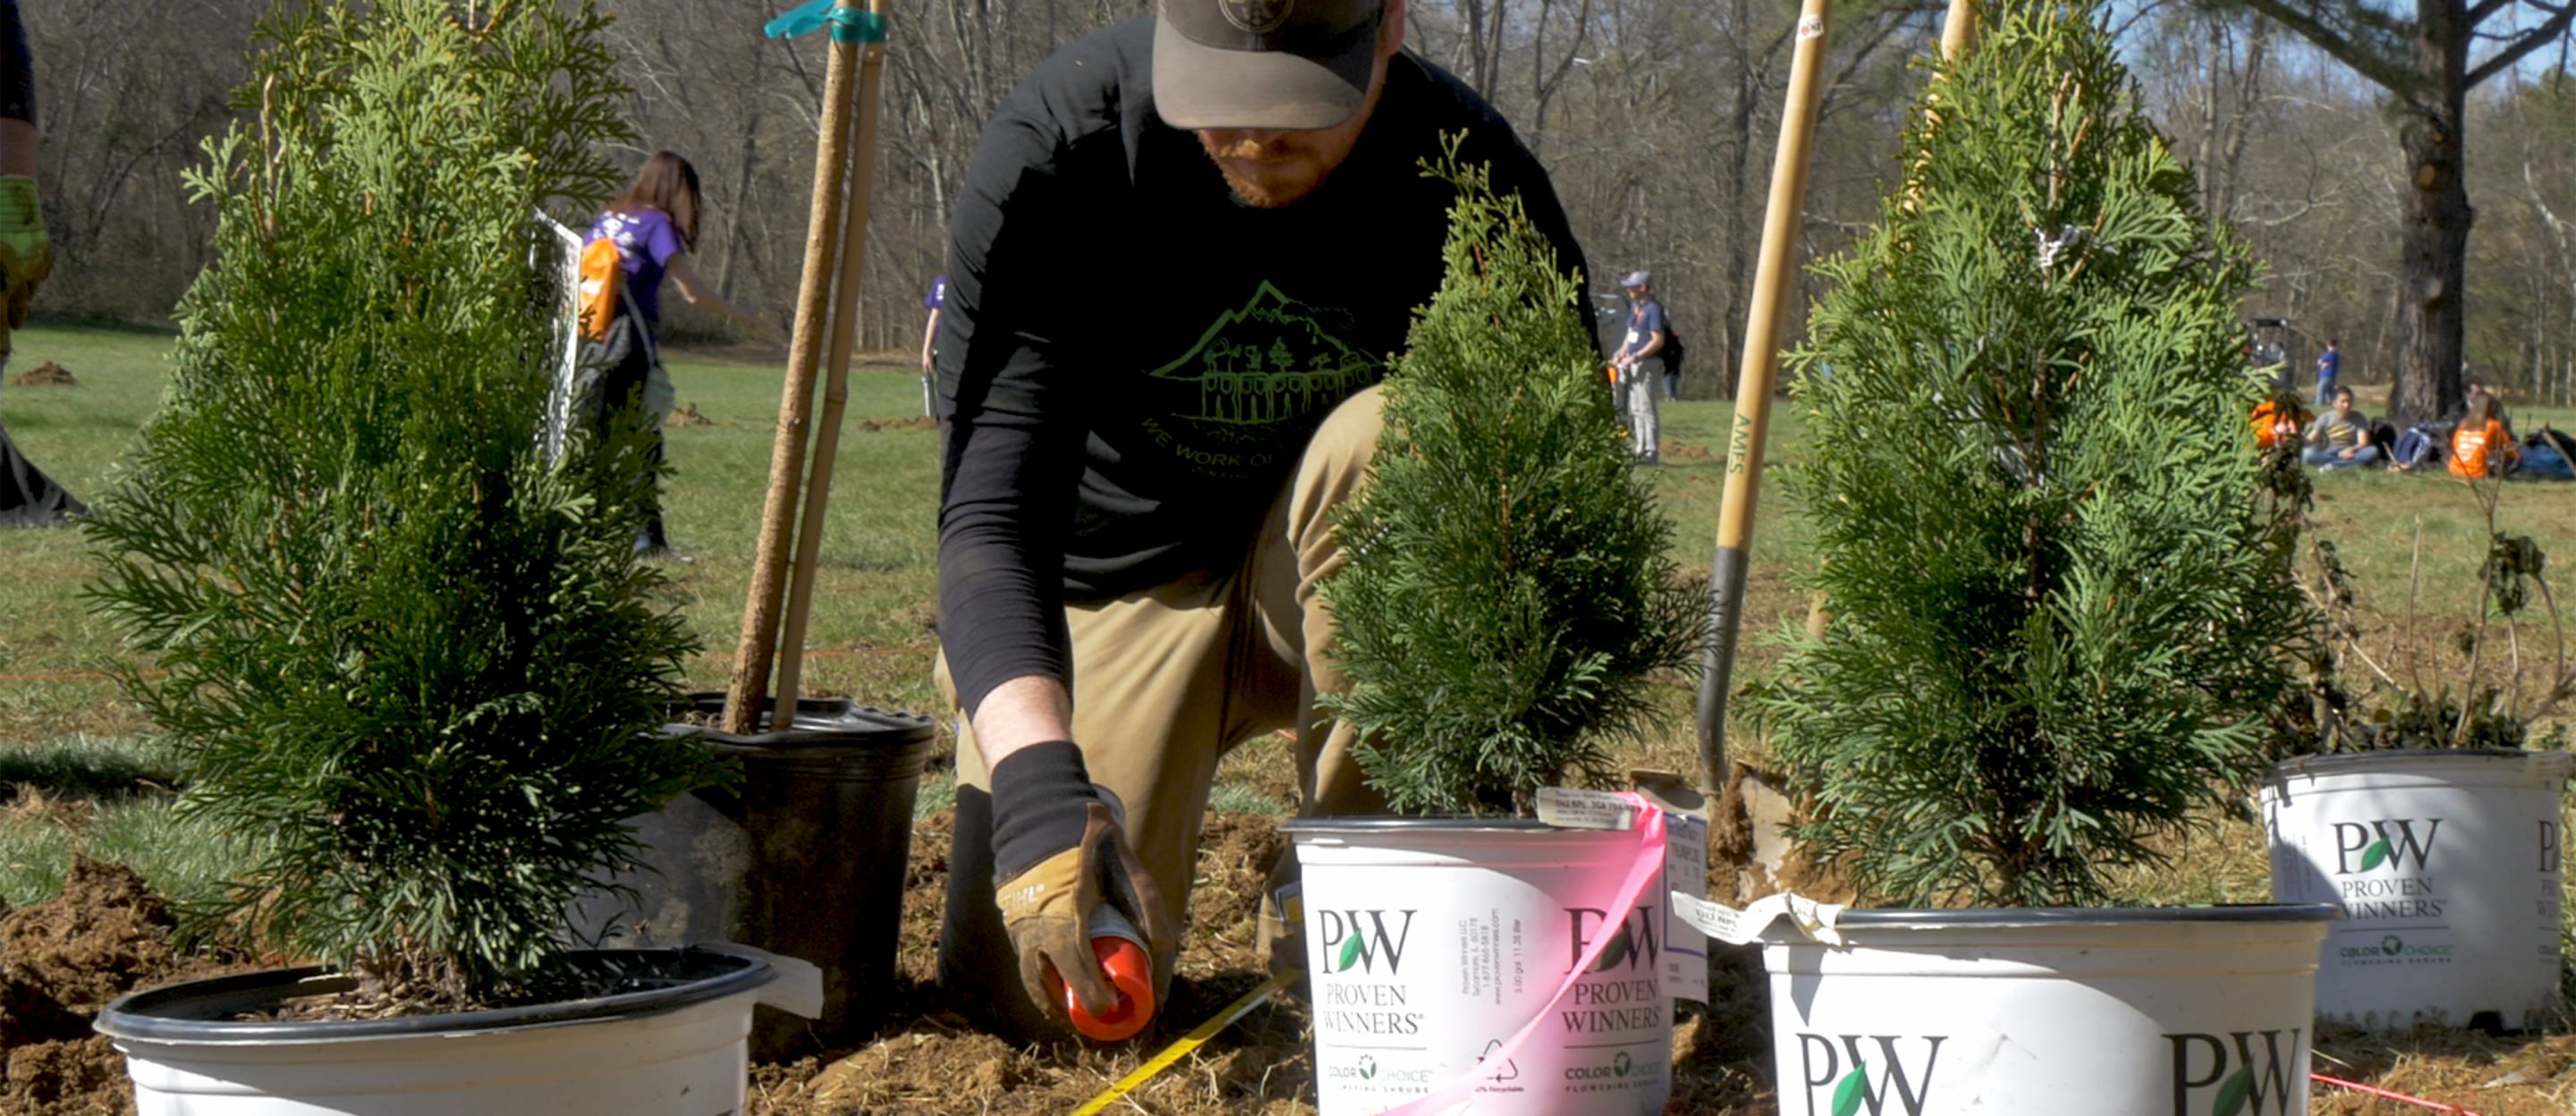 Student planting Proven Winners arborvitae at sponsored event